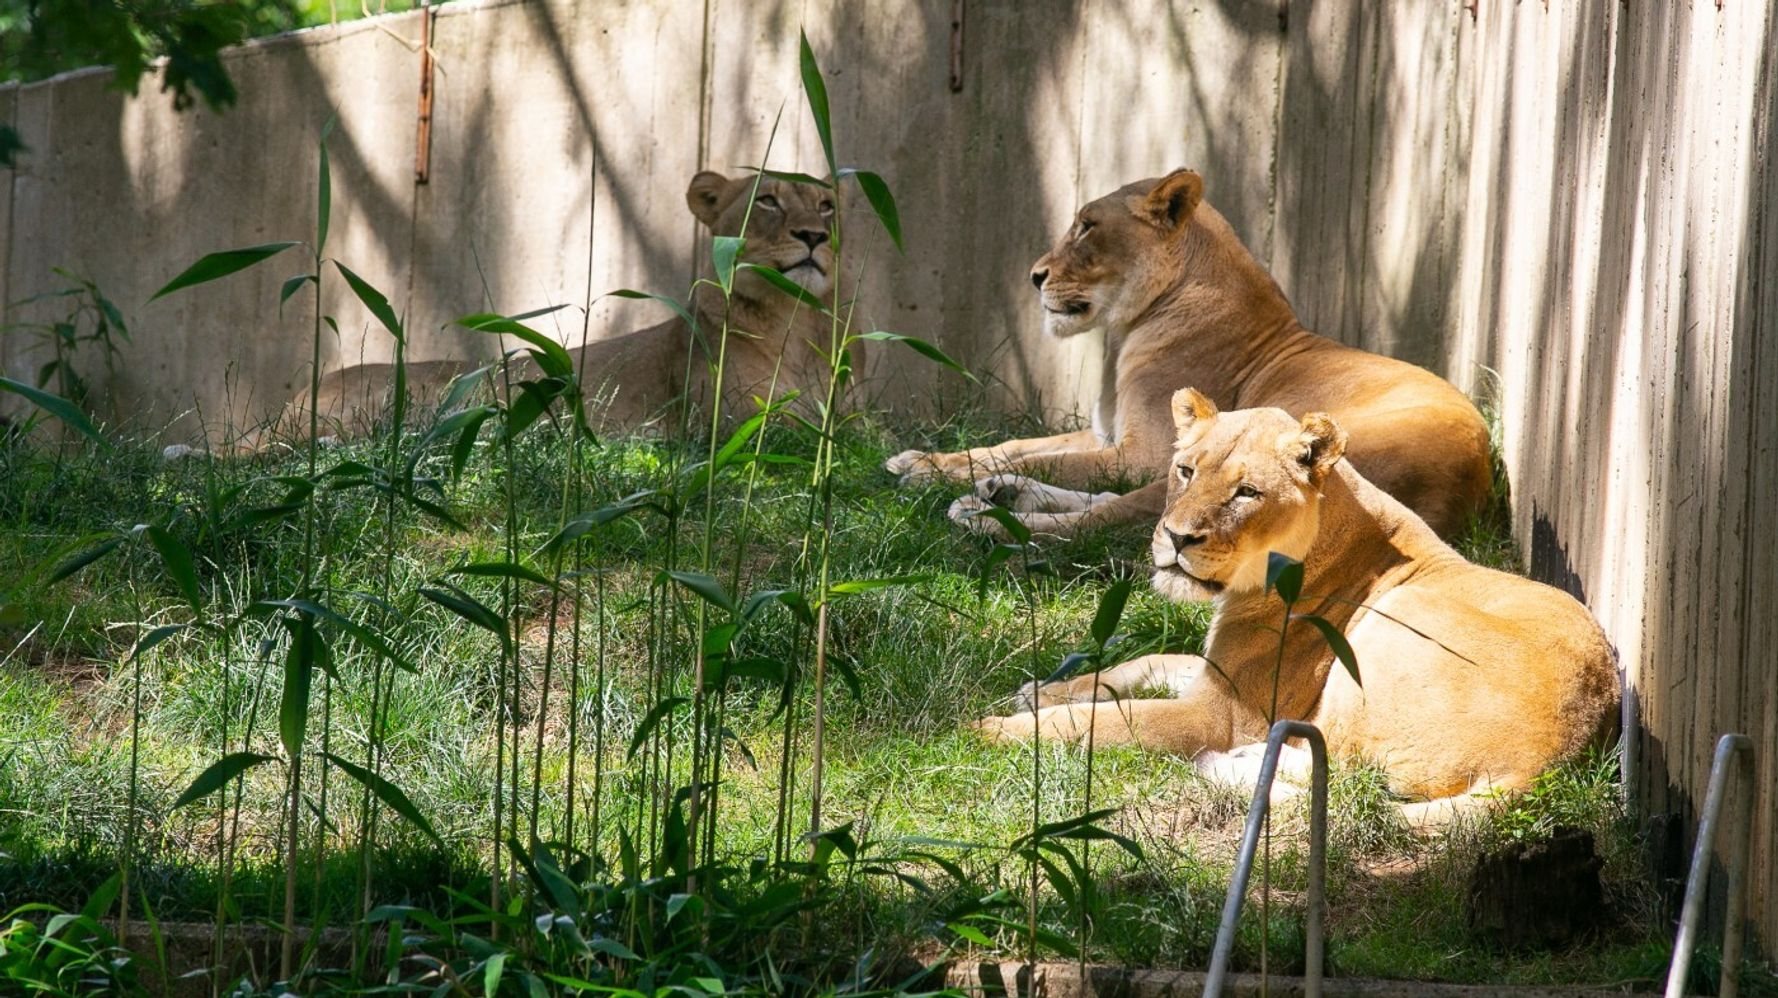 COVID-Sick Zoo Lions Fed 'Tempting' Baby Food, Chicken Broth To Amp Up Appetites